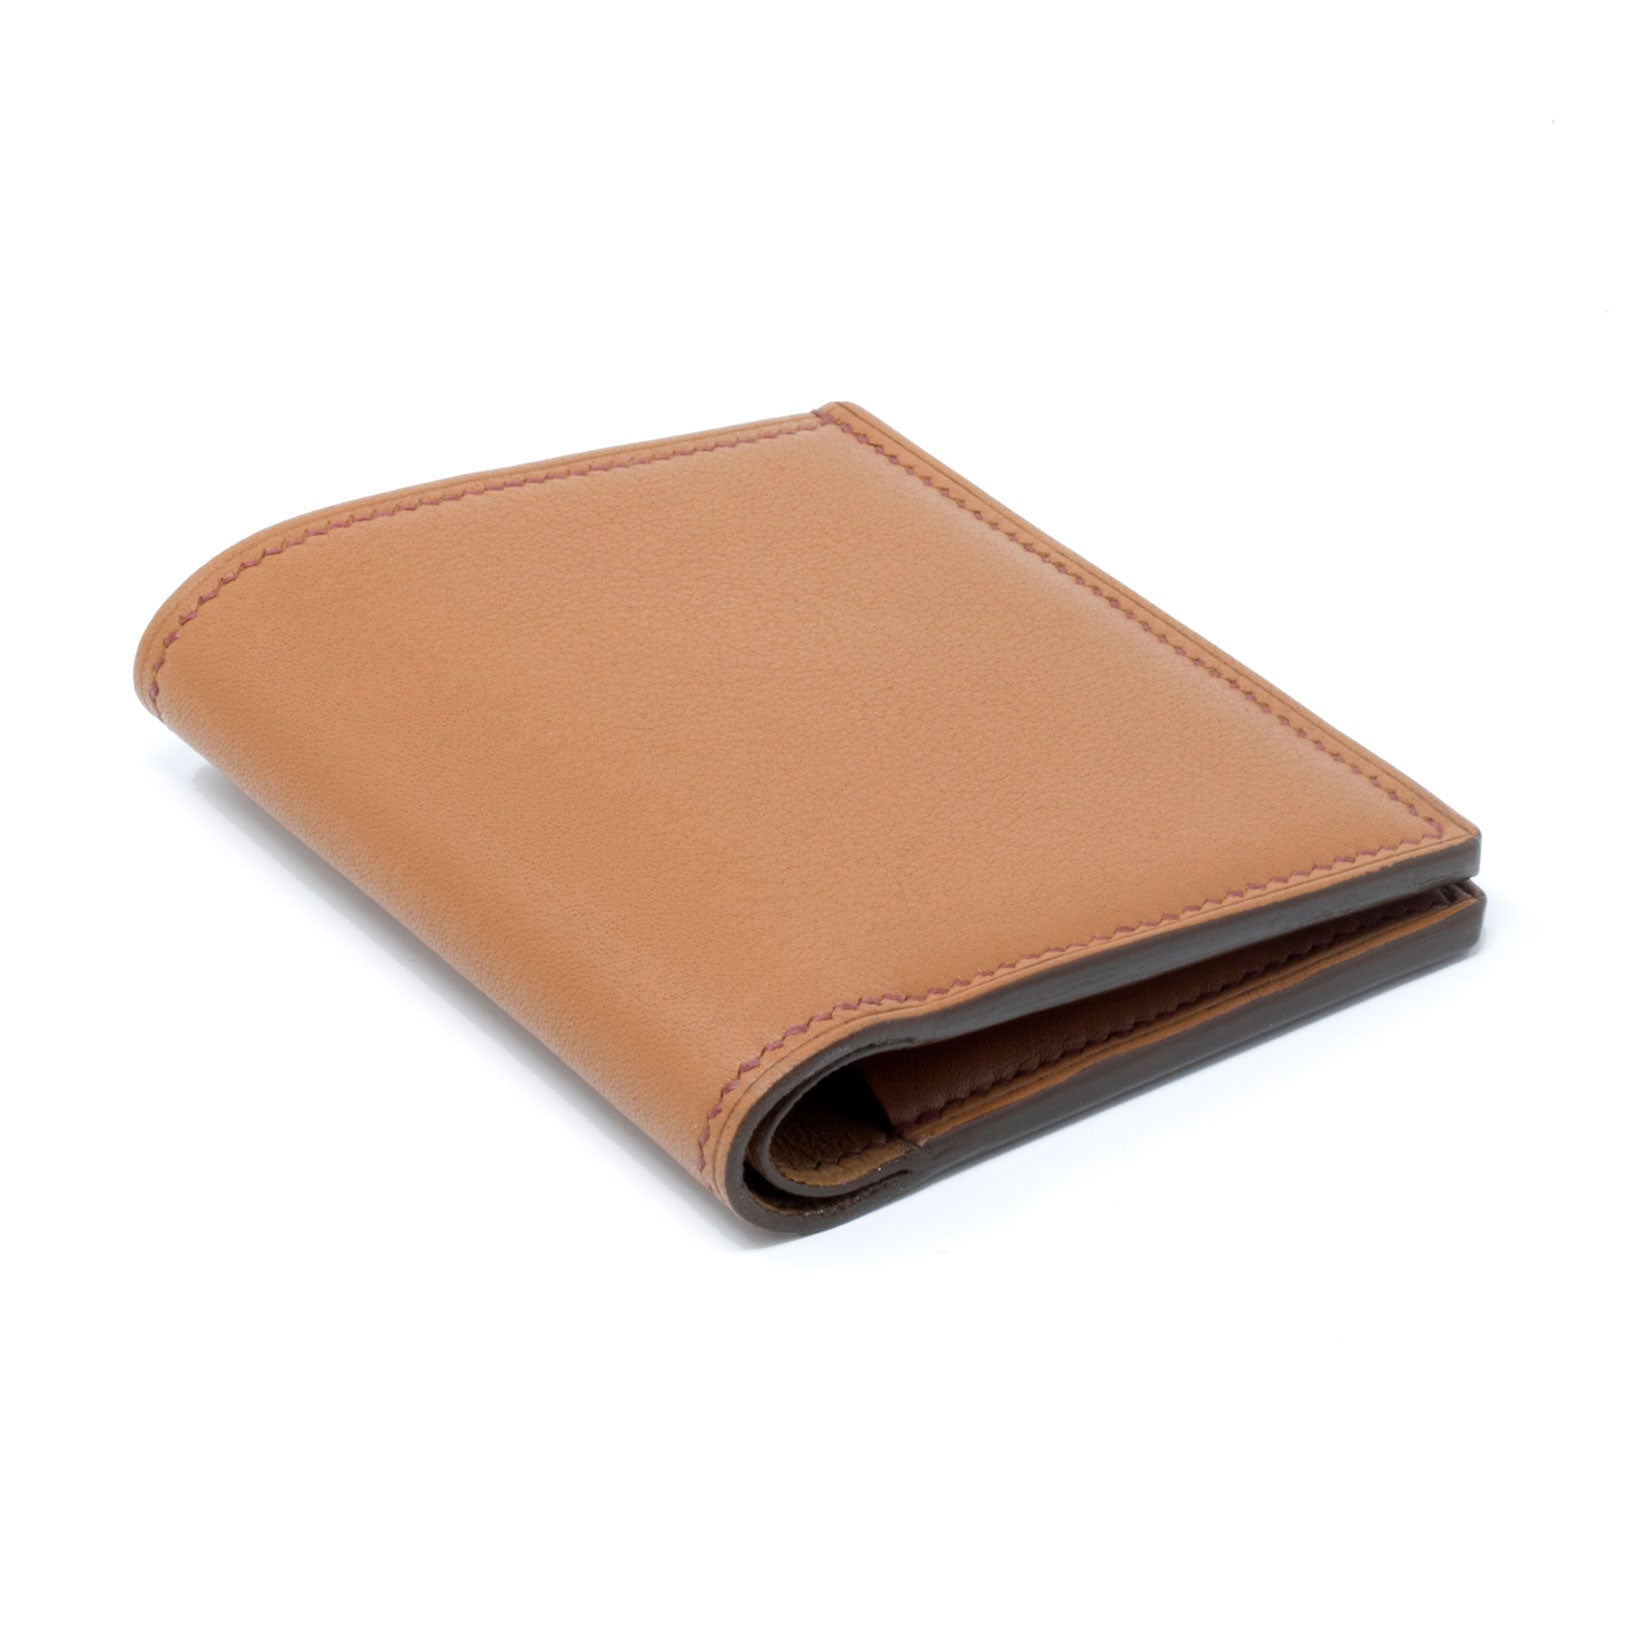 Gold Pebbled Taurillon Kent Bi-Fold Wallet Handmade by Bruna Andreoni